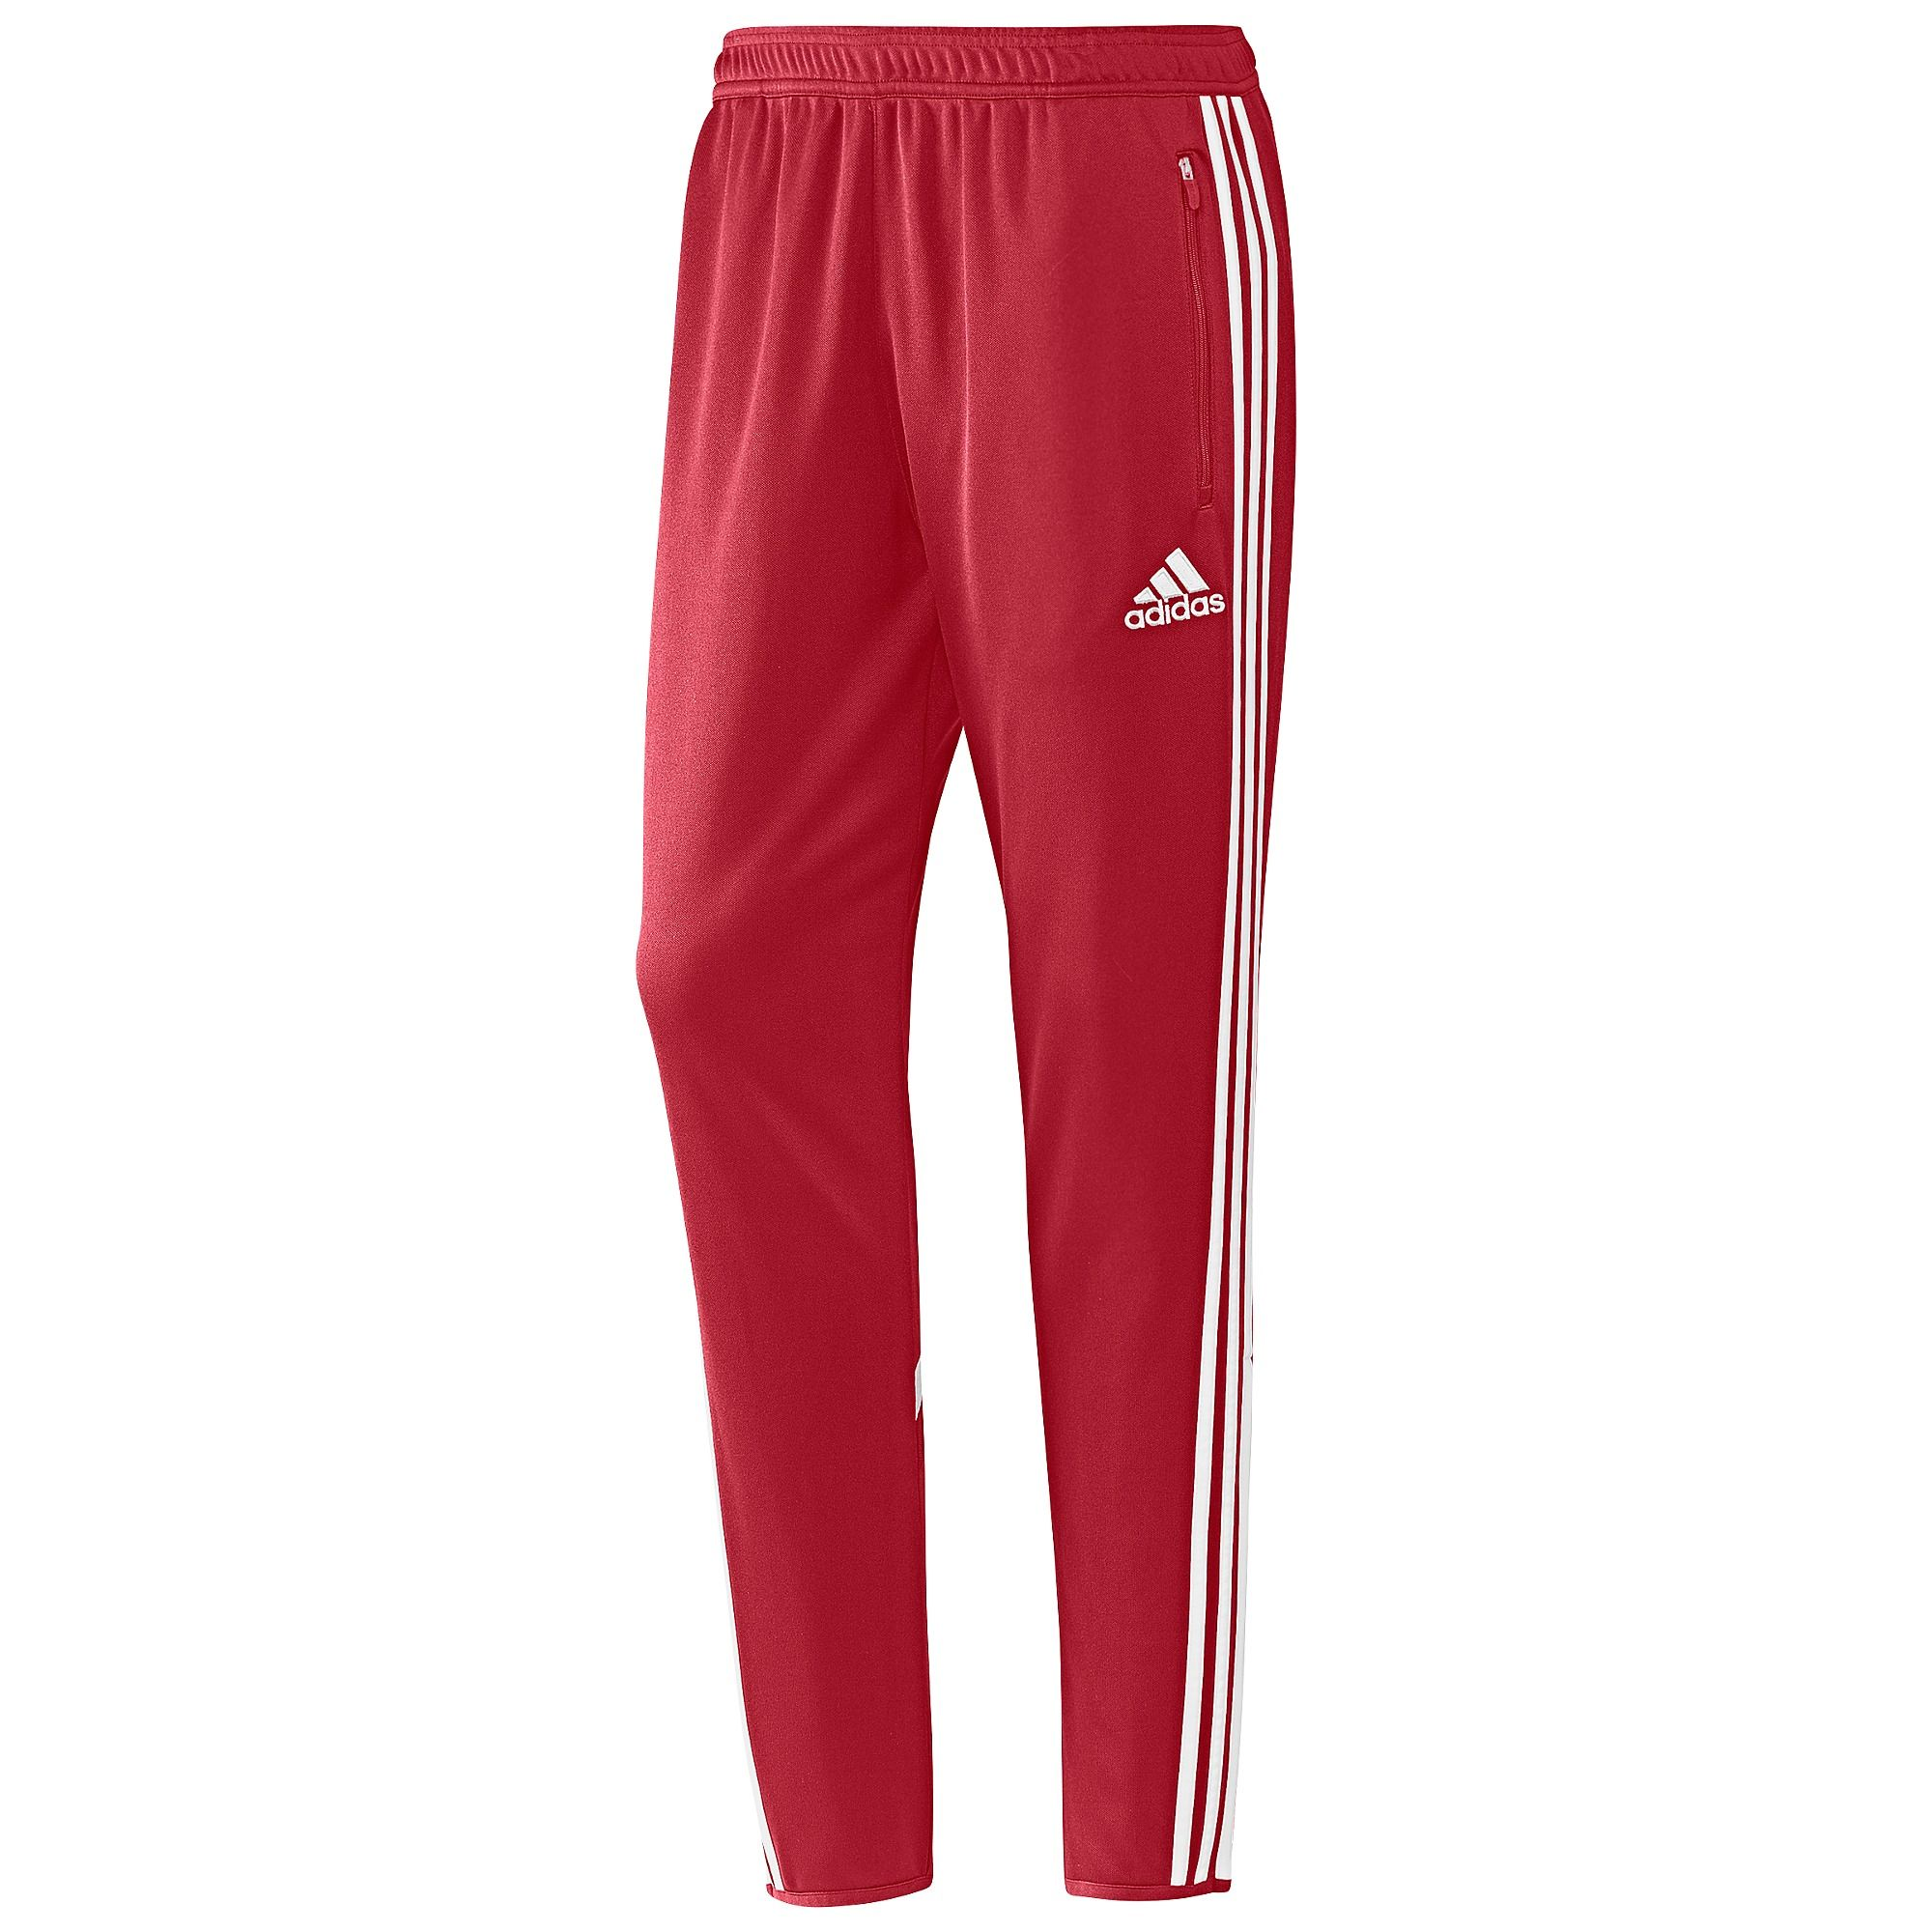 0e1178f6c9 Stay cool on the pitch with these men's soccer pants. Designed with ...